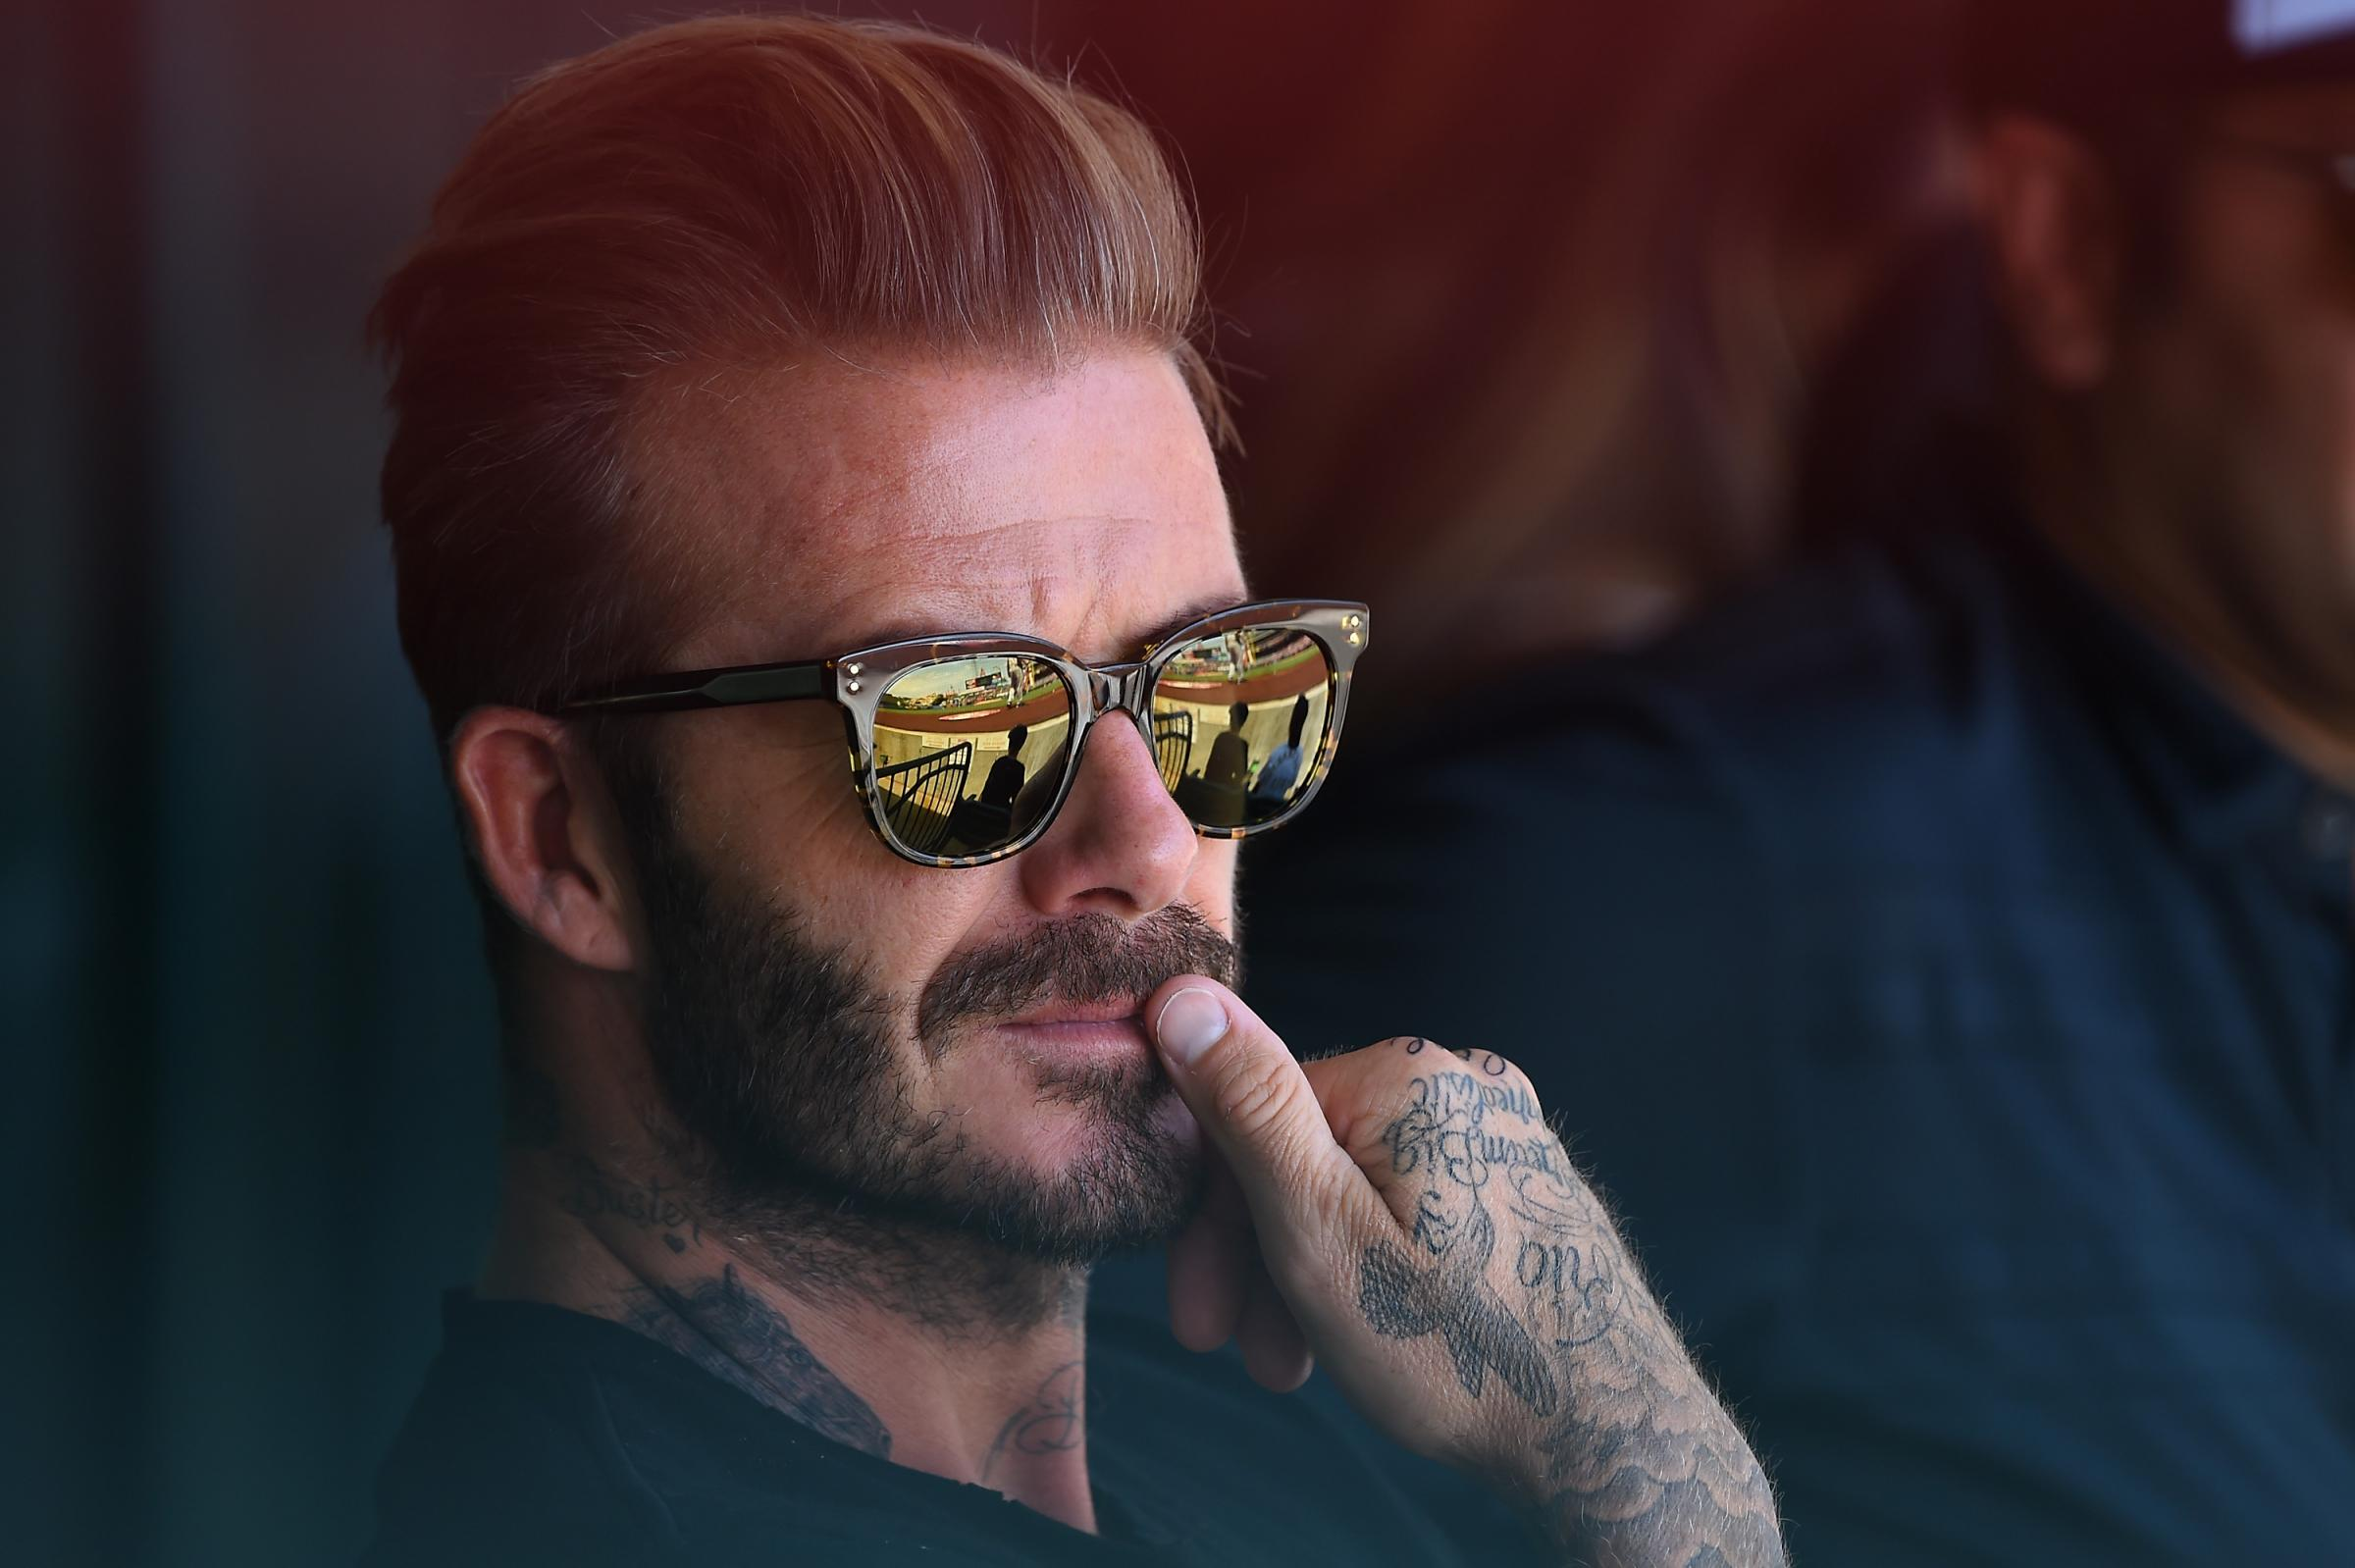 Kevin McKenna: David Beckham's quest for a knighthood reveals some